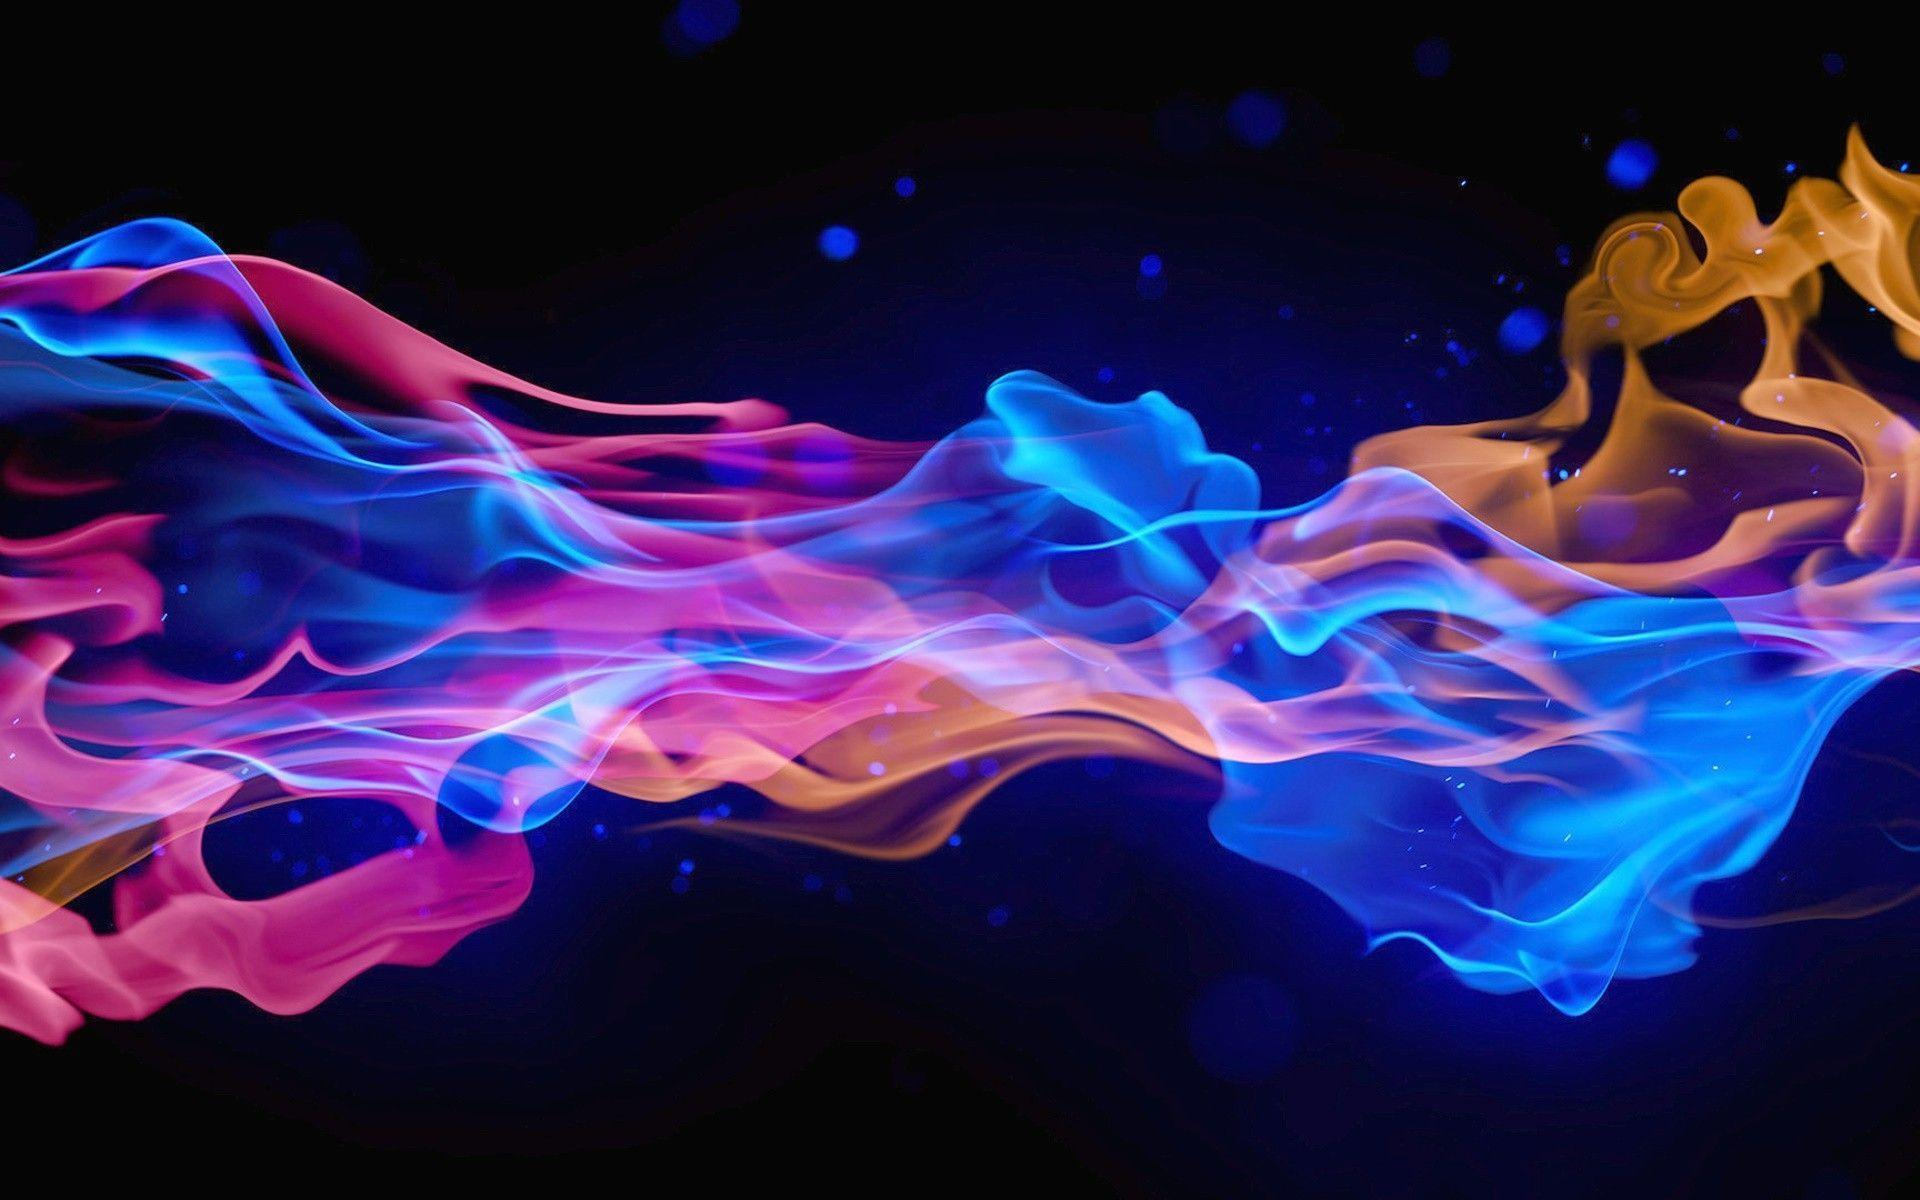 Colored smoke wallpapers wallpaper cave for Die coolsten wallpaper